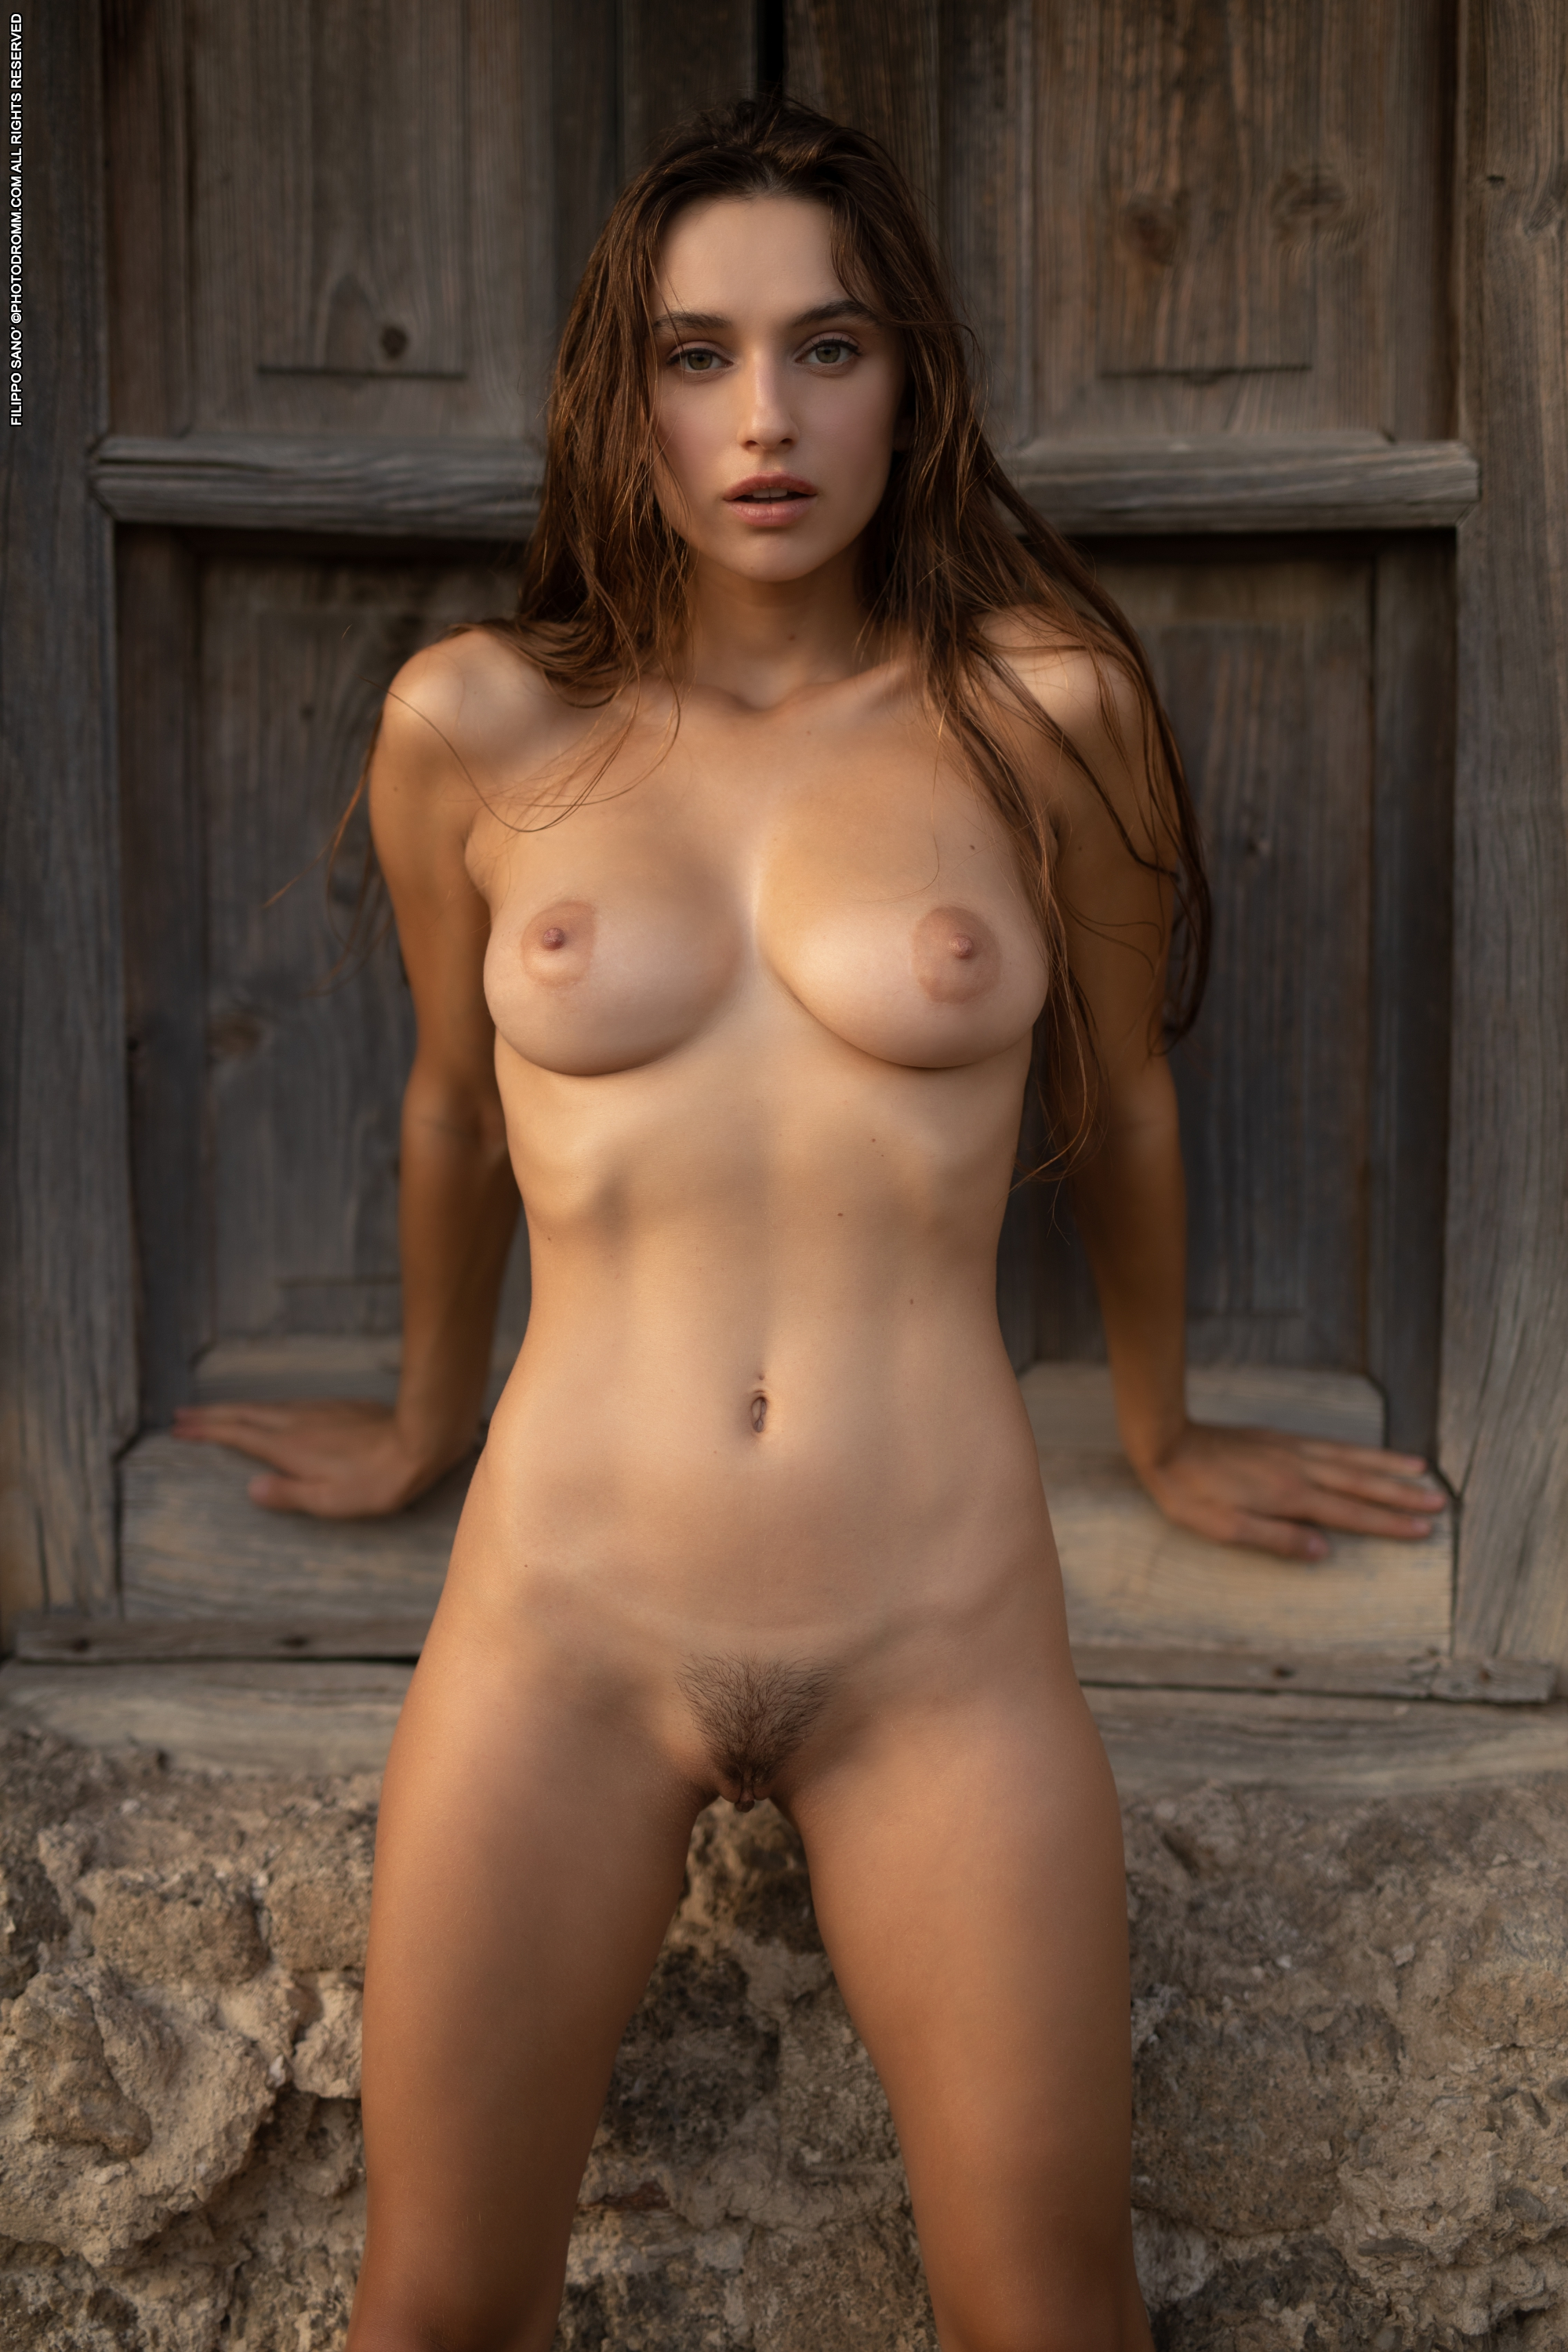 best-nude-photos-high-quality-boobs-tits-pussy-mix-vol3-73